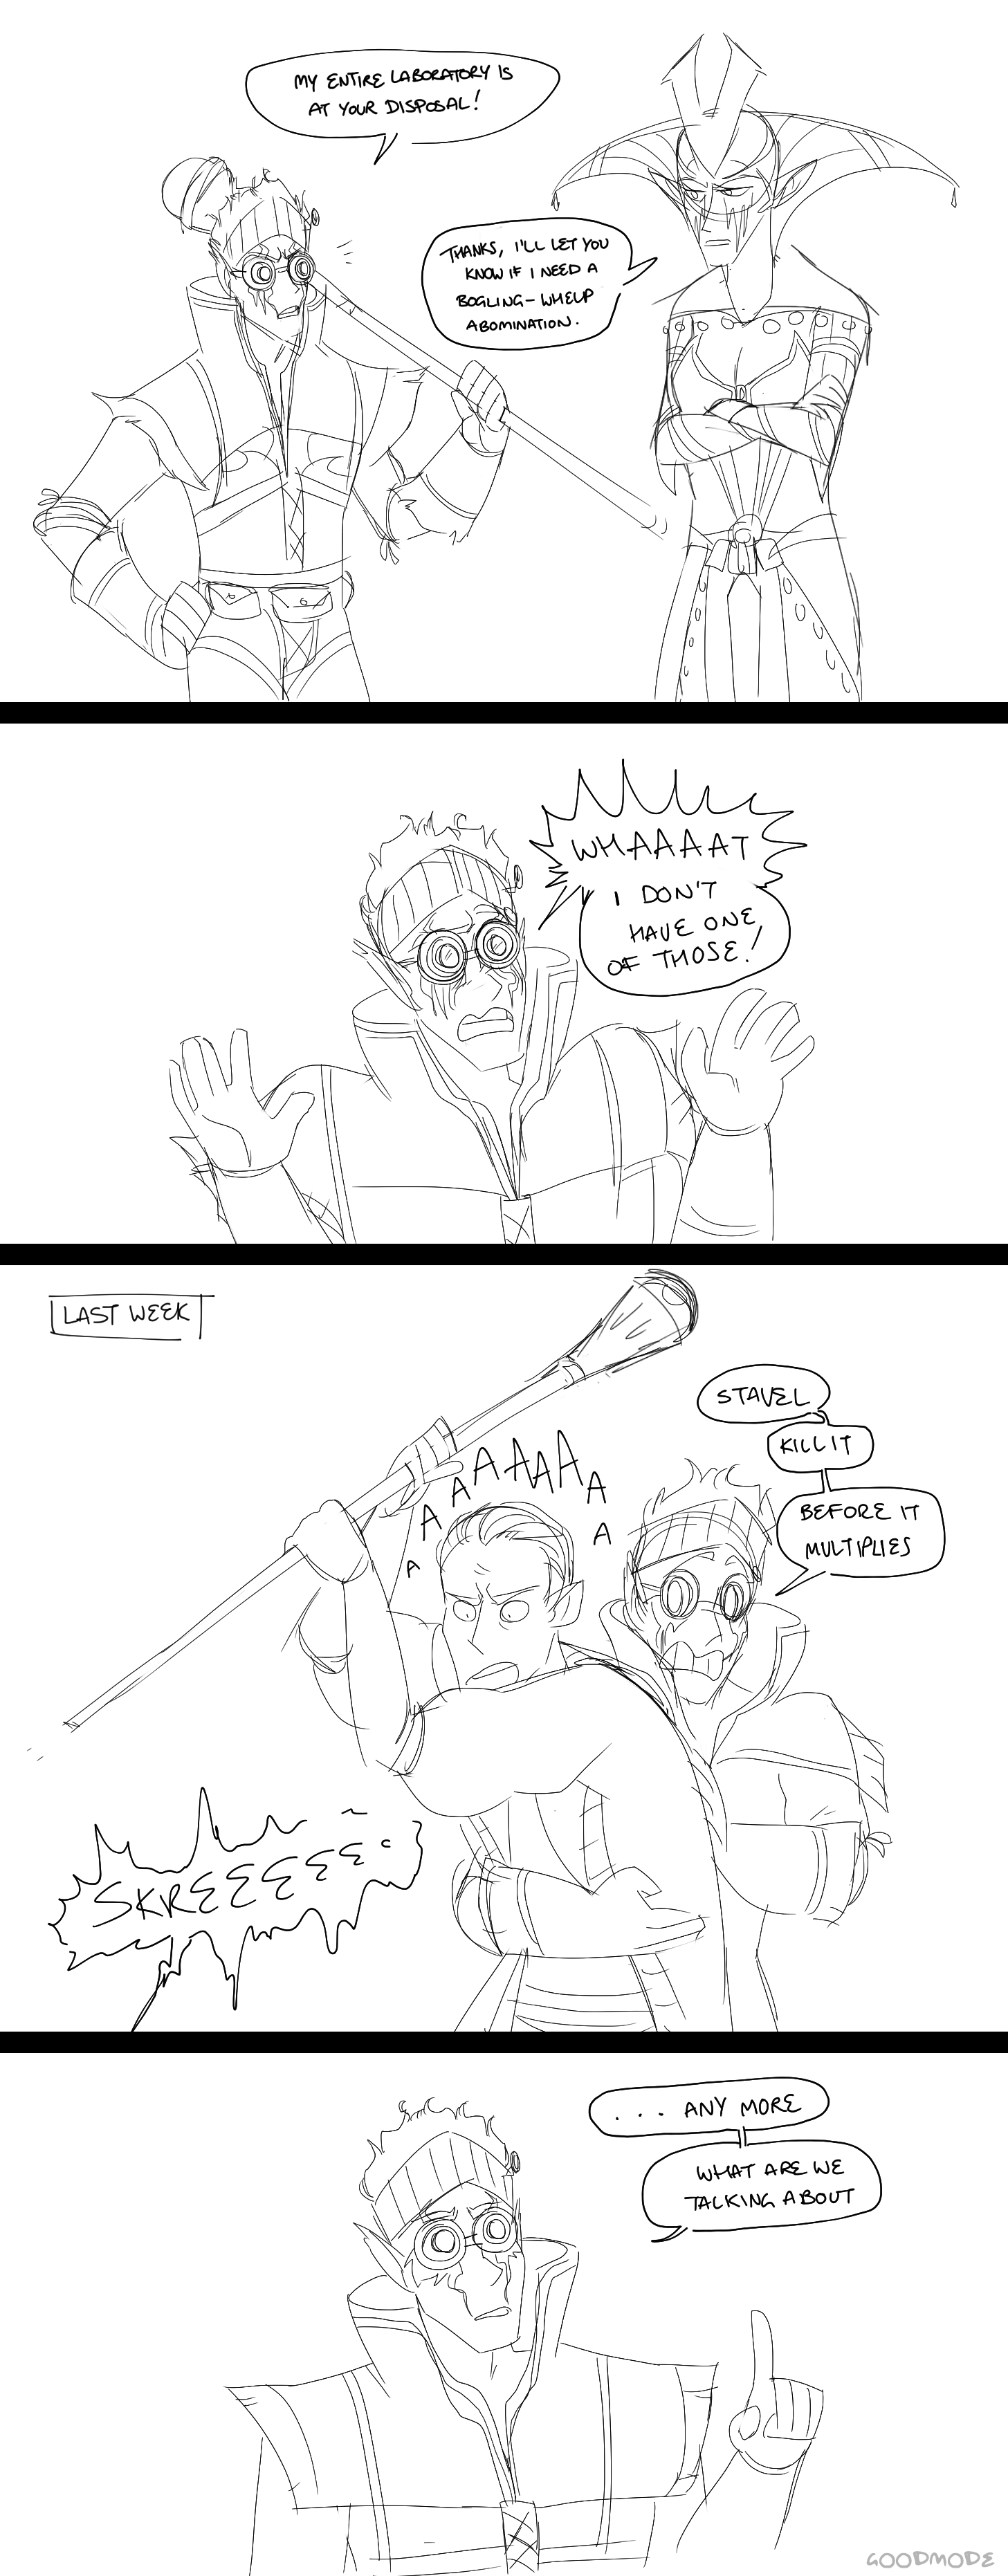 bug s art dump a parody of this clip from archer because i like to combine my interests and ruin both at the same time nice b^